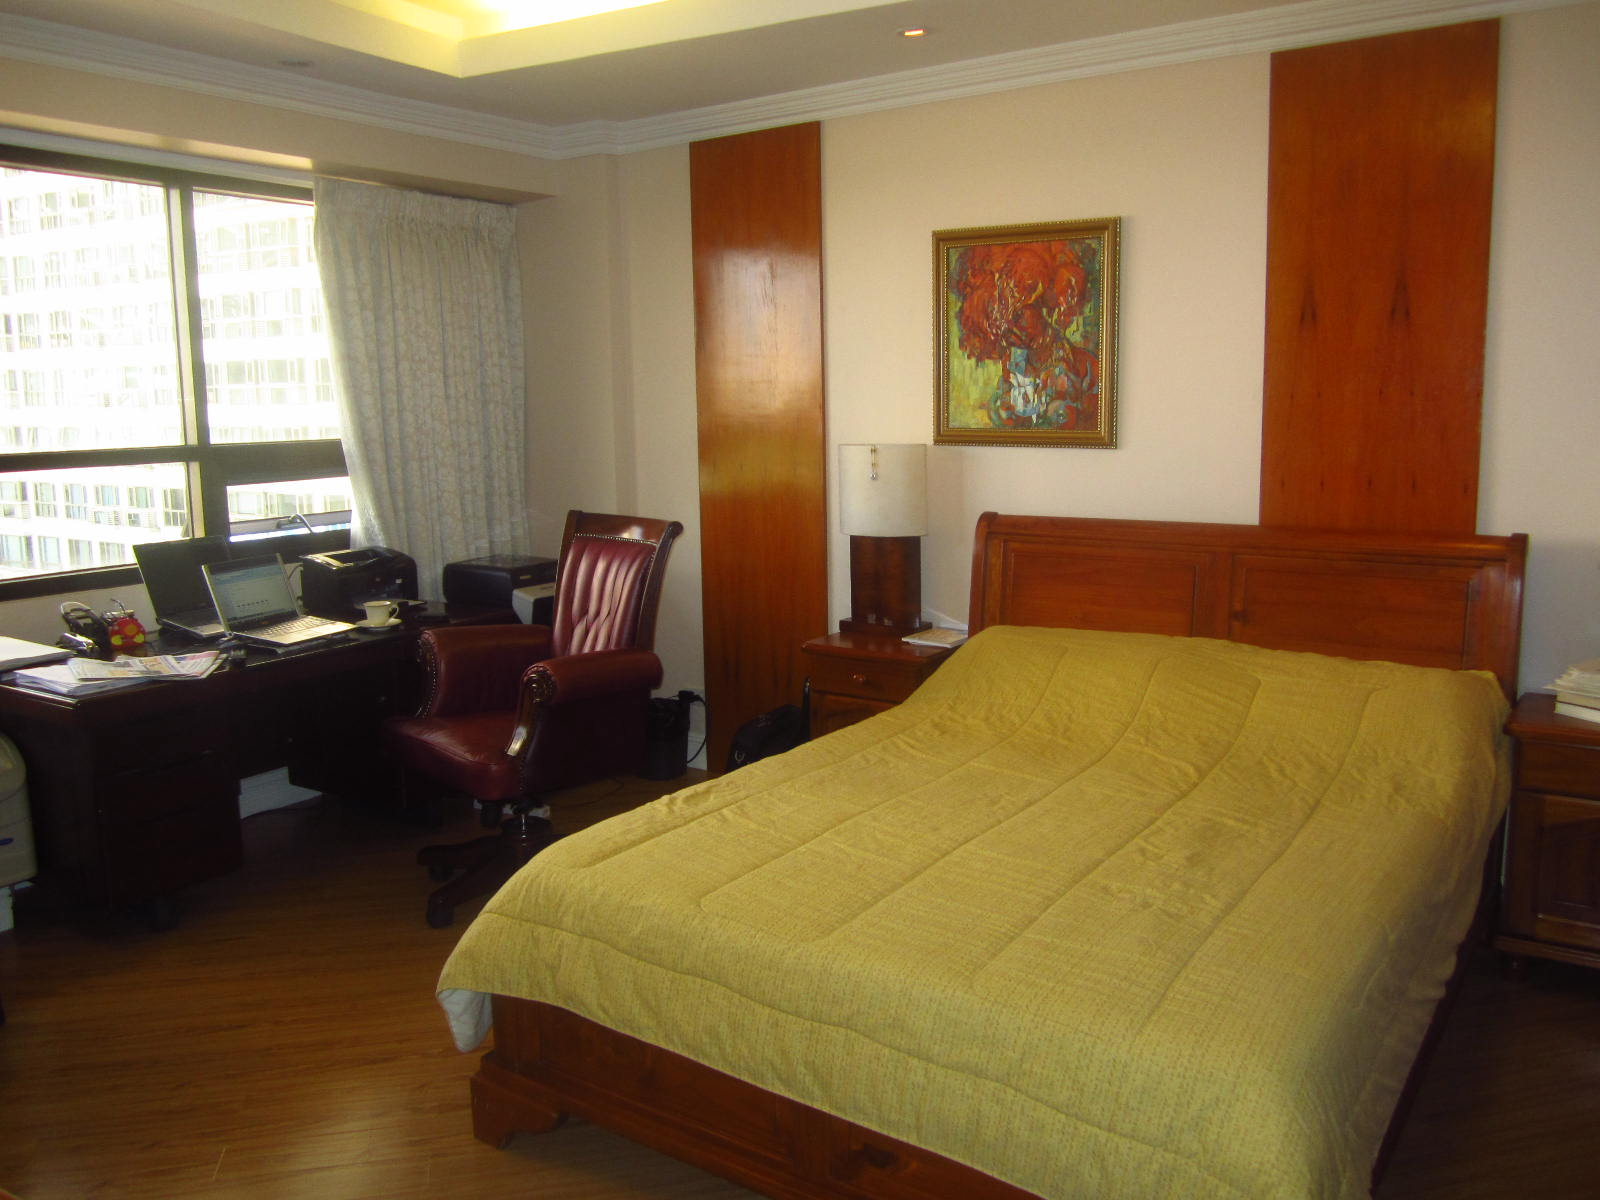 FOR SALE: Apartment / Condo / Townhouse Manila Metropolitan Area > Other areas 7